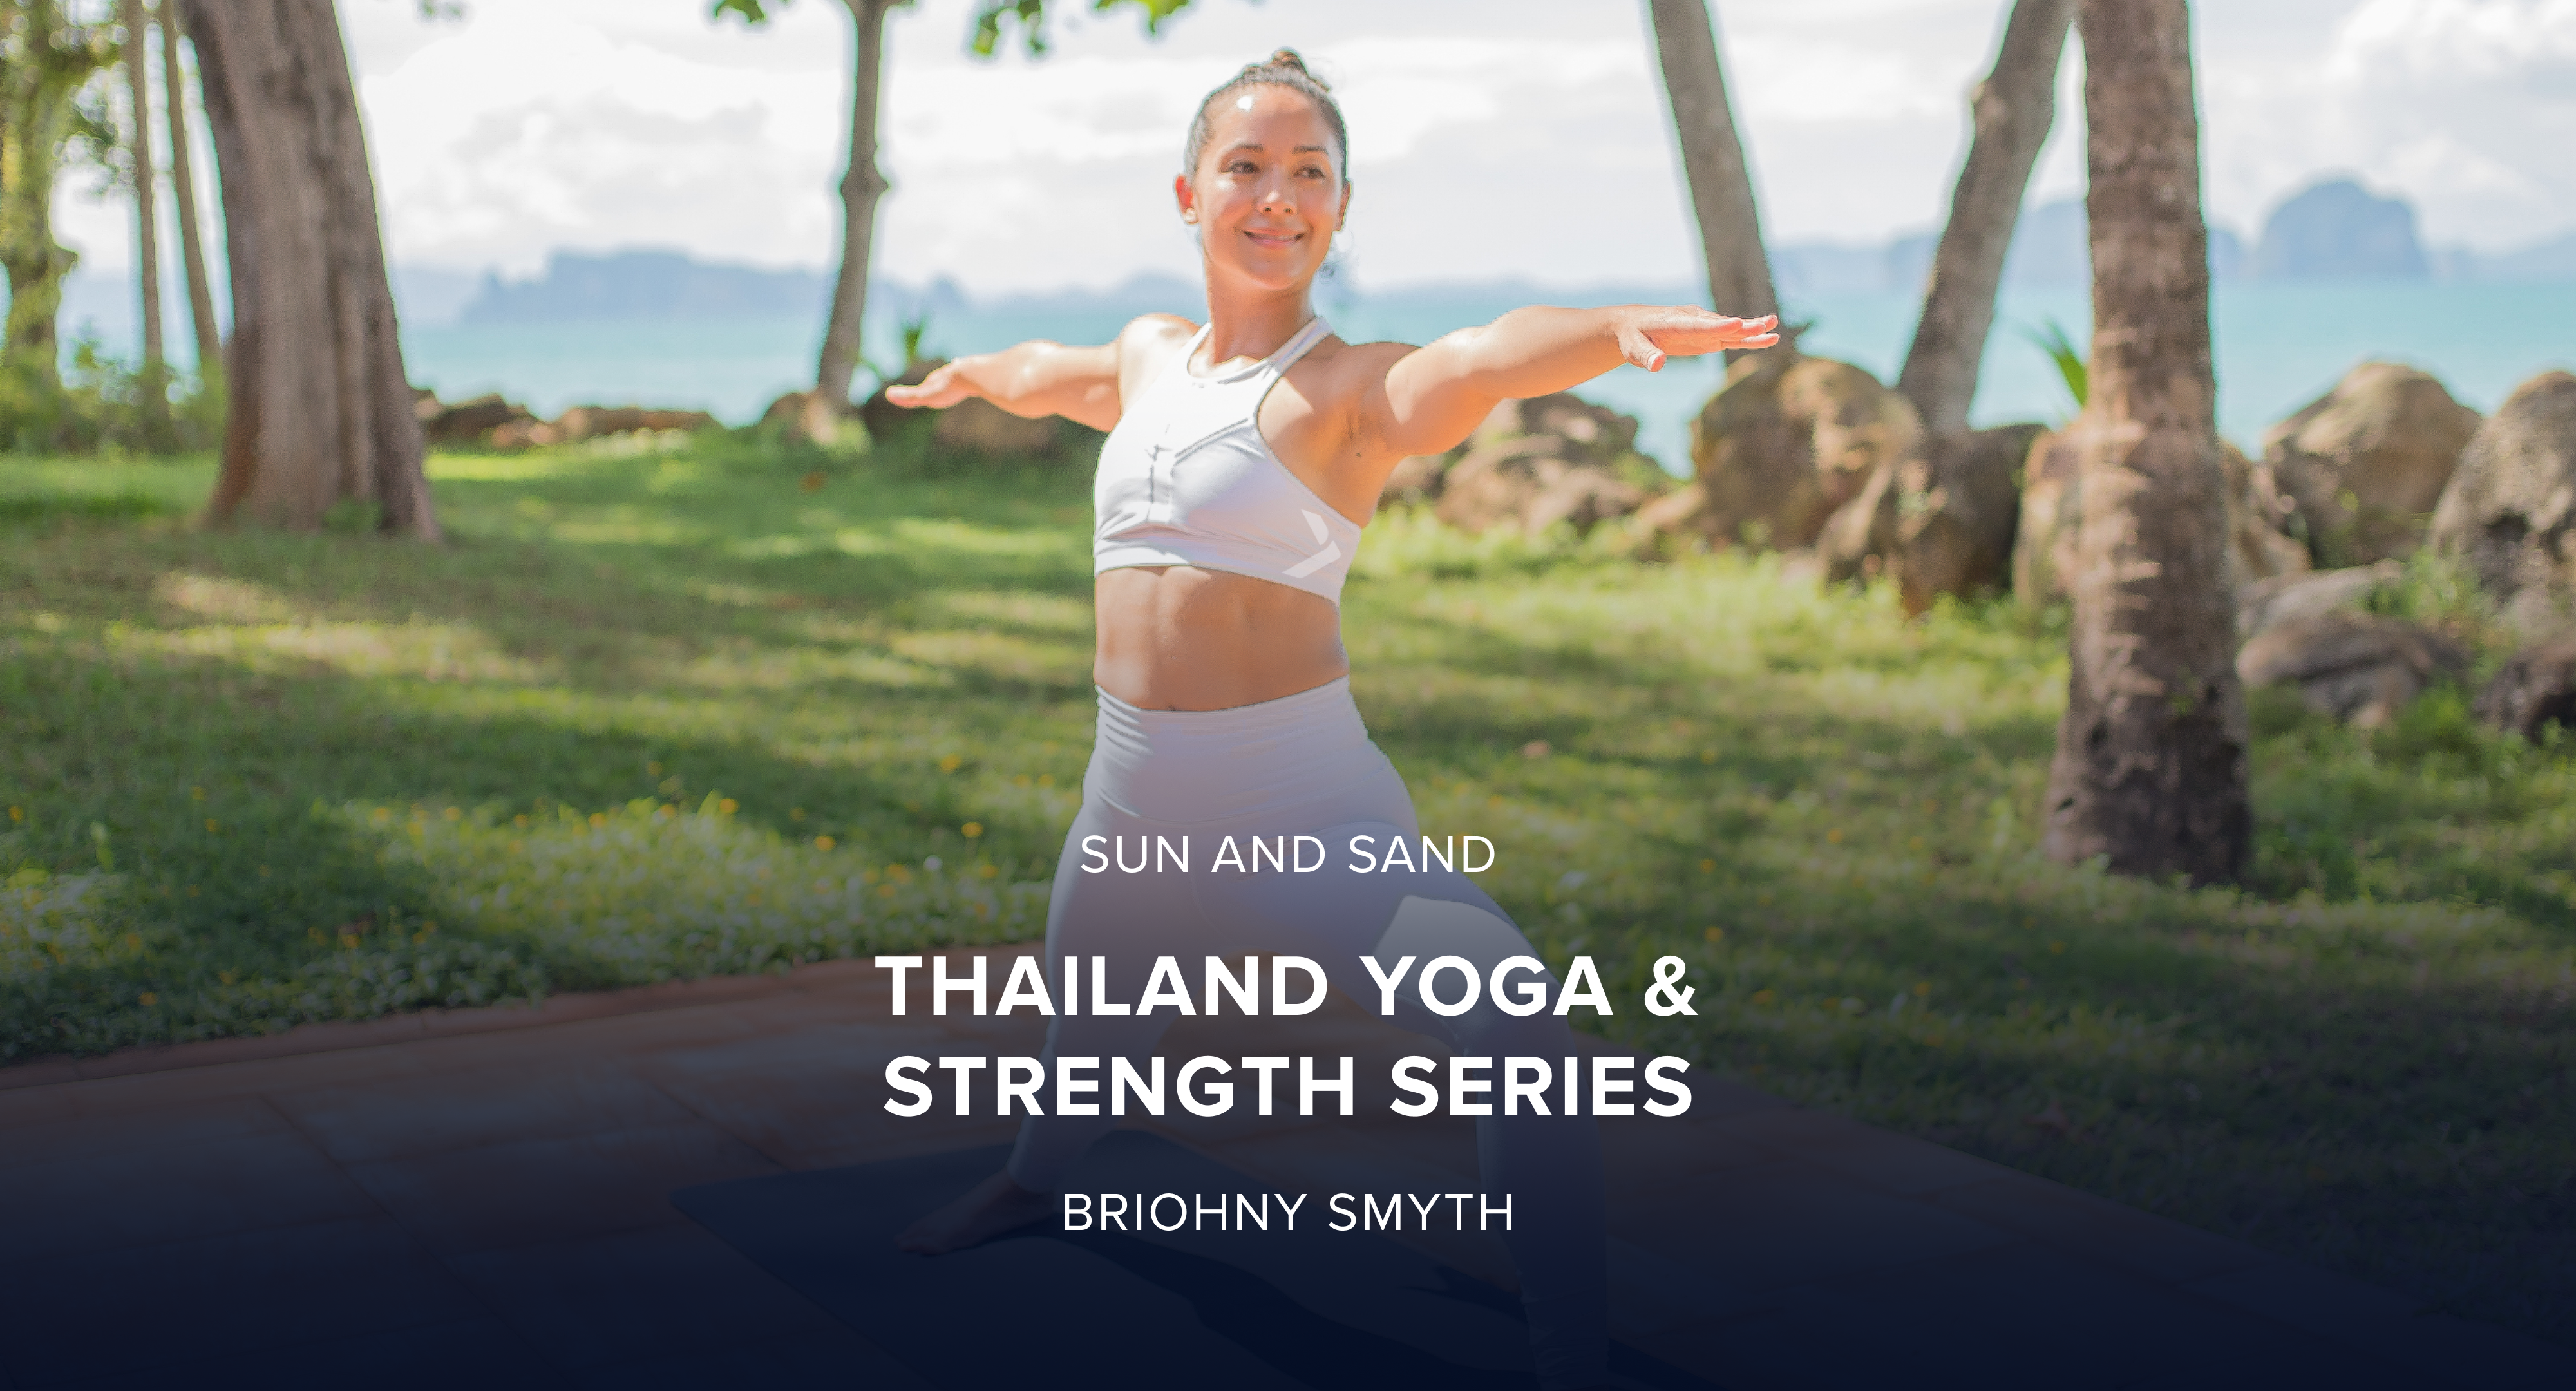 iFit March Sun and Sand Yoga and Strength Challenge: Thailand Yoga & Strength Workout Series with Trainer Briohny Smith